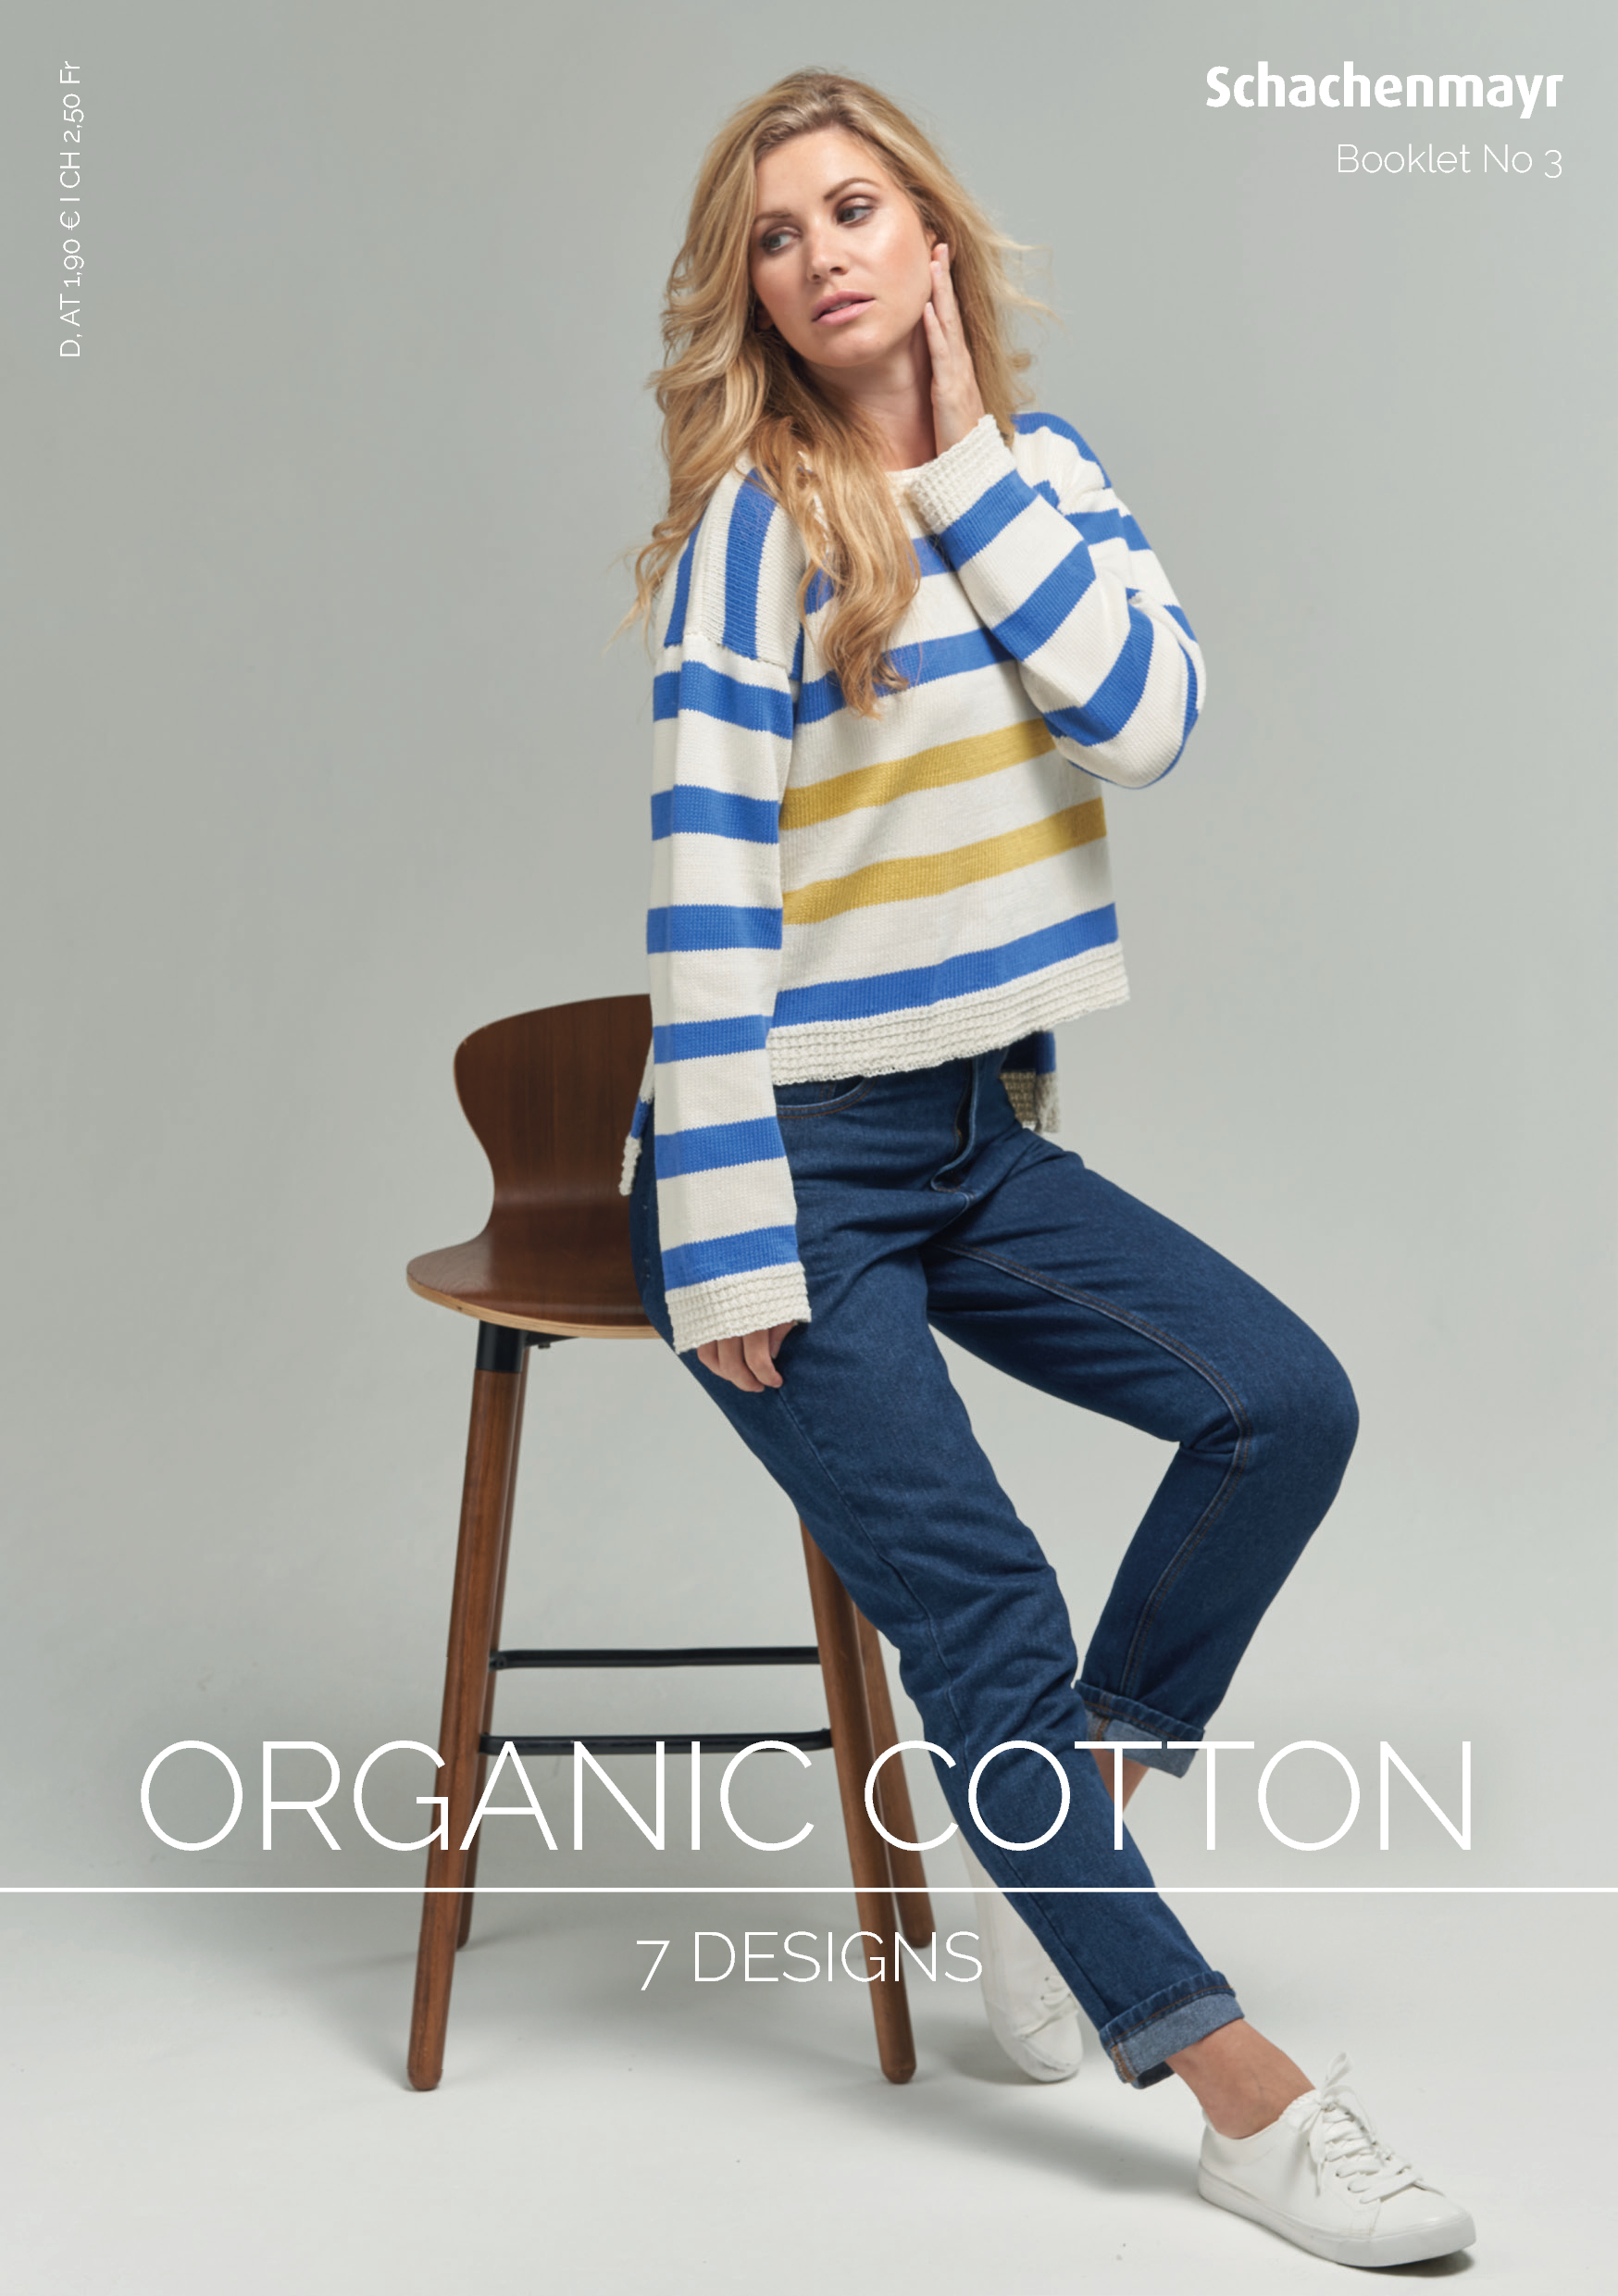 Titel_Booklet_OrgsanicCotton_No3_A5-pdf-Hi-Res-JPEG